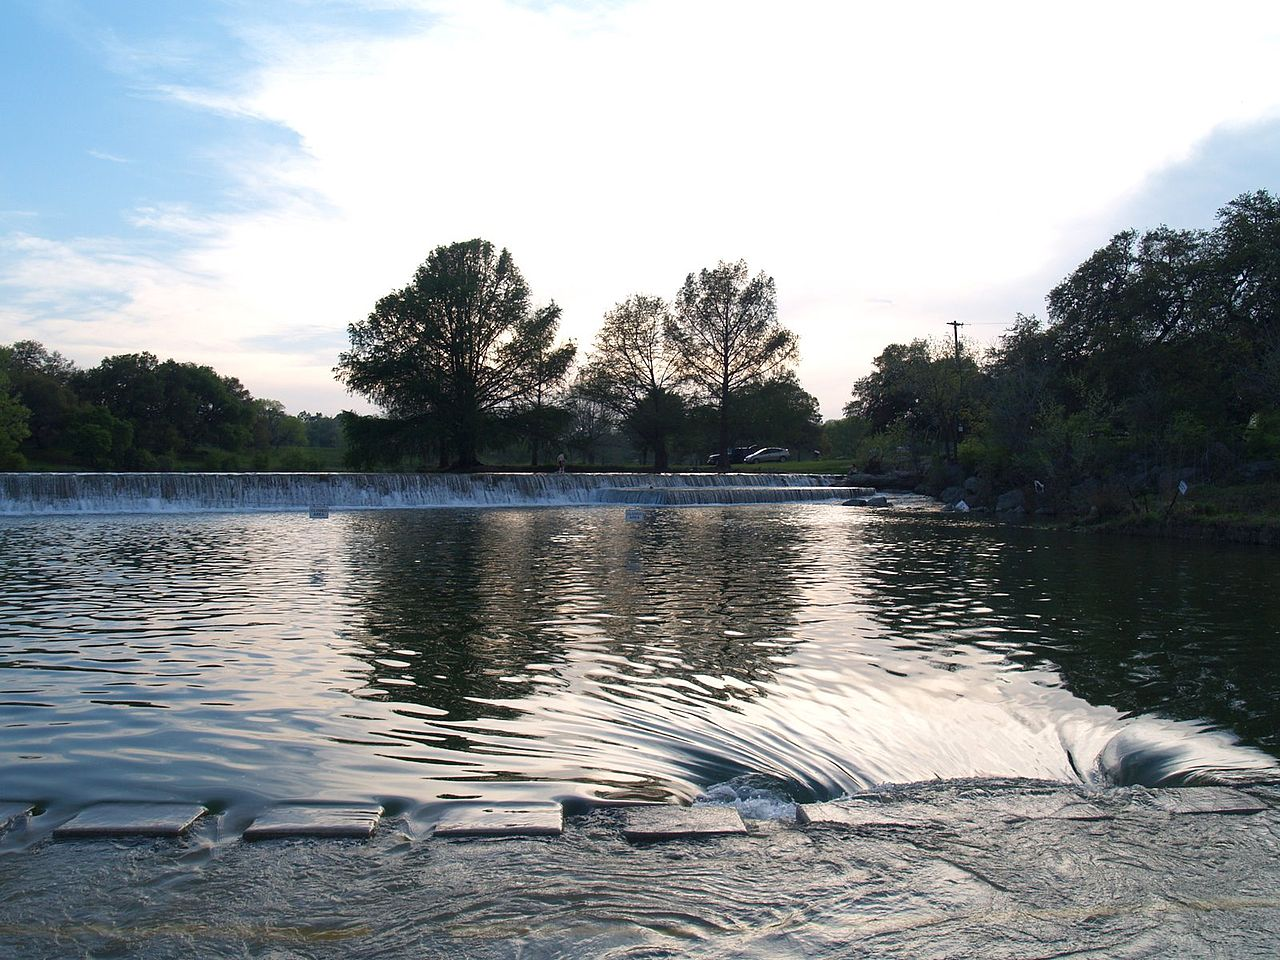 Best Natural Swimming Location In San Antonio City-Blanco State Park